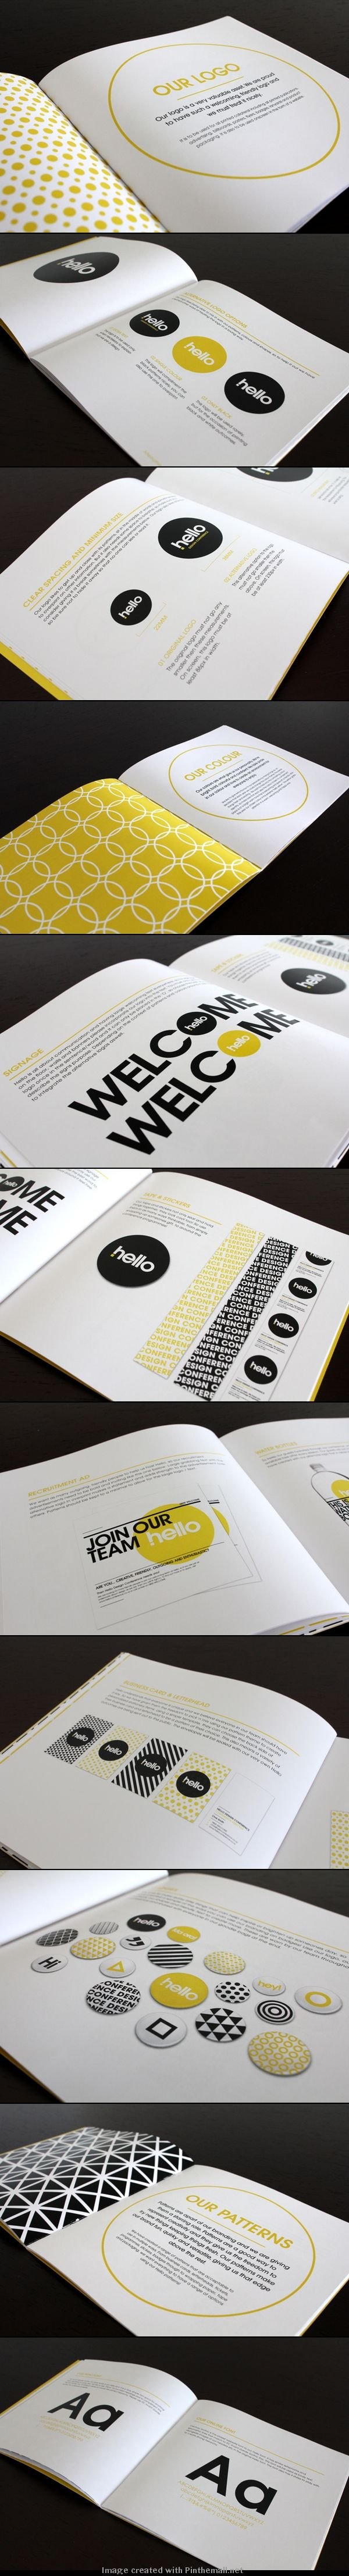 Hello Design Conference Brand Standards Manual by Raewyn Brandon, New York